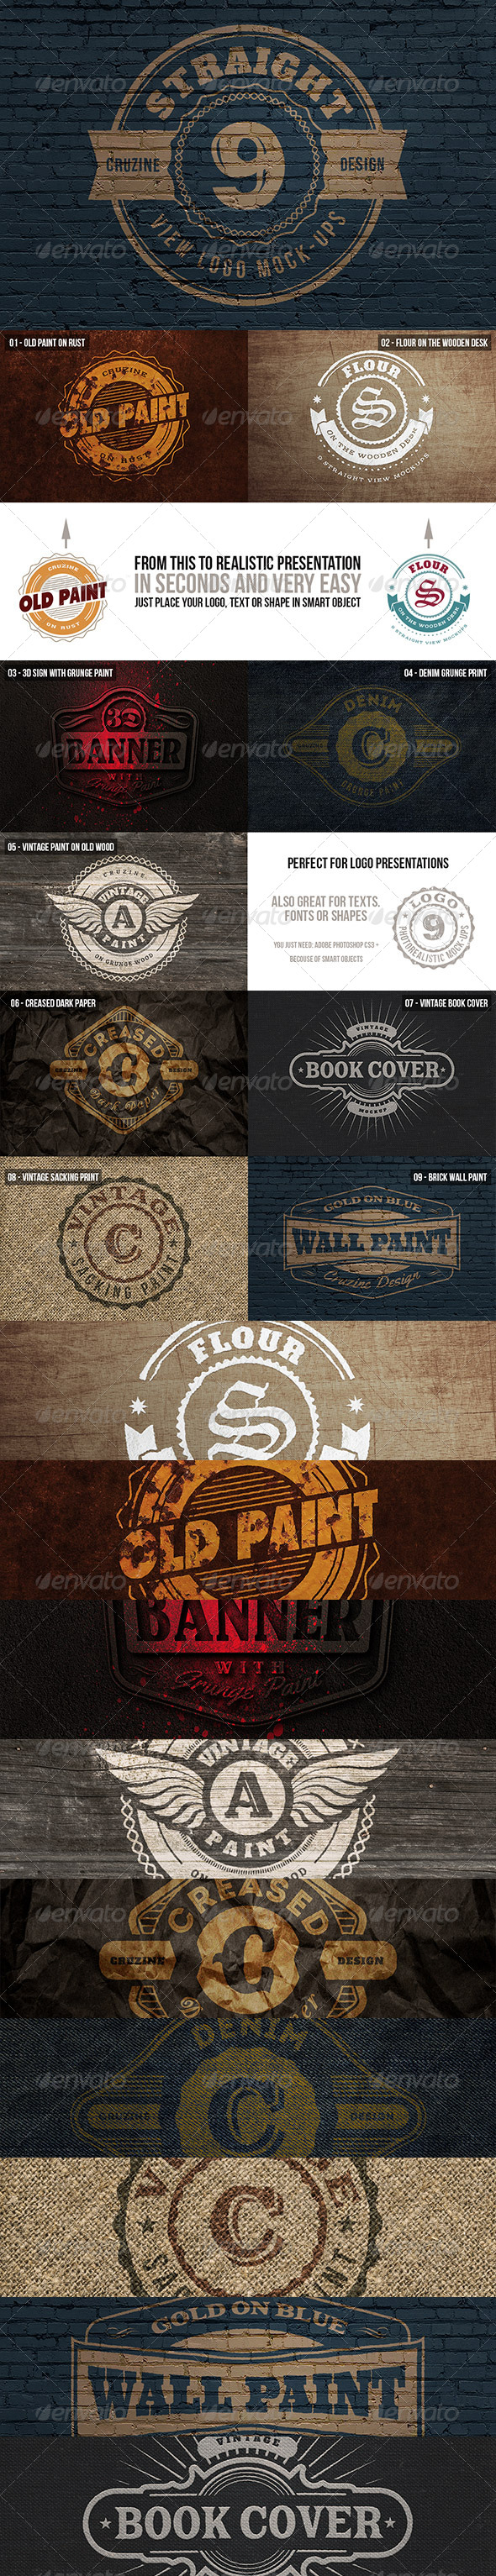 Straight View Logo Mock-ups - Logo Product Mock-Ups